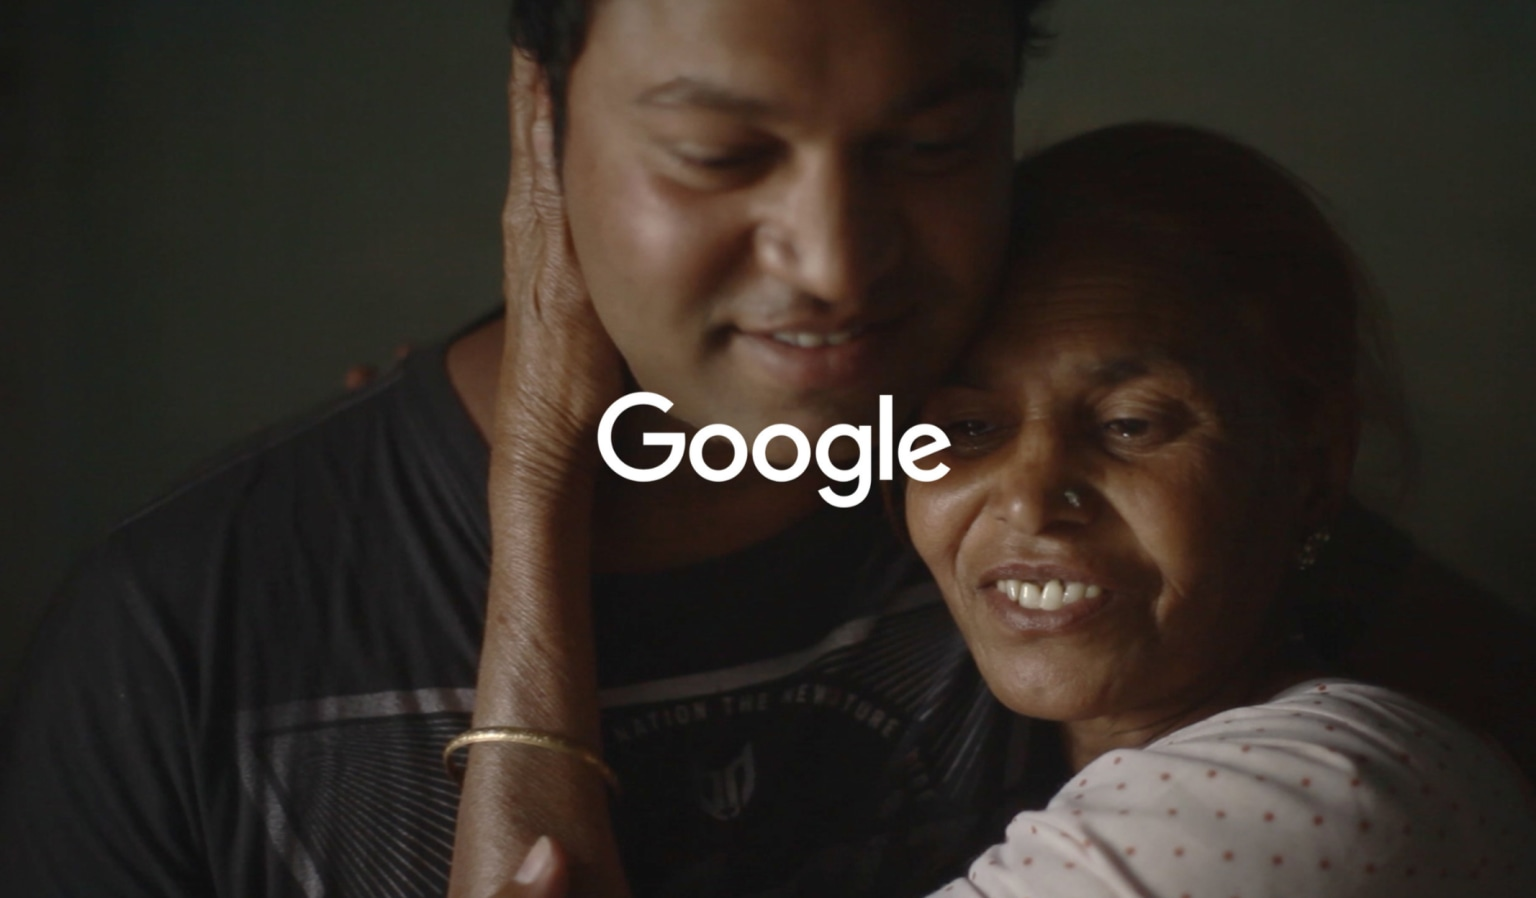 Google - A Very Long Journey